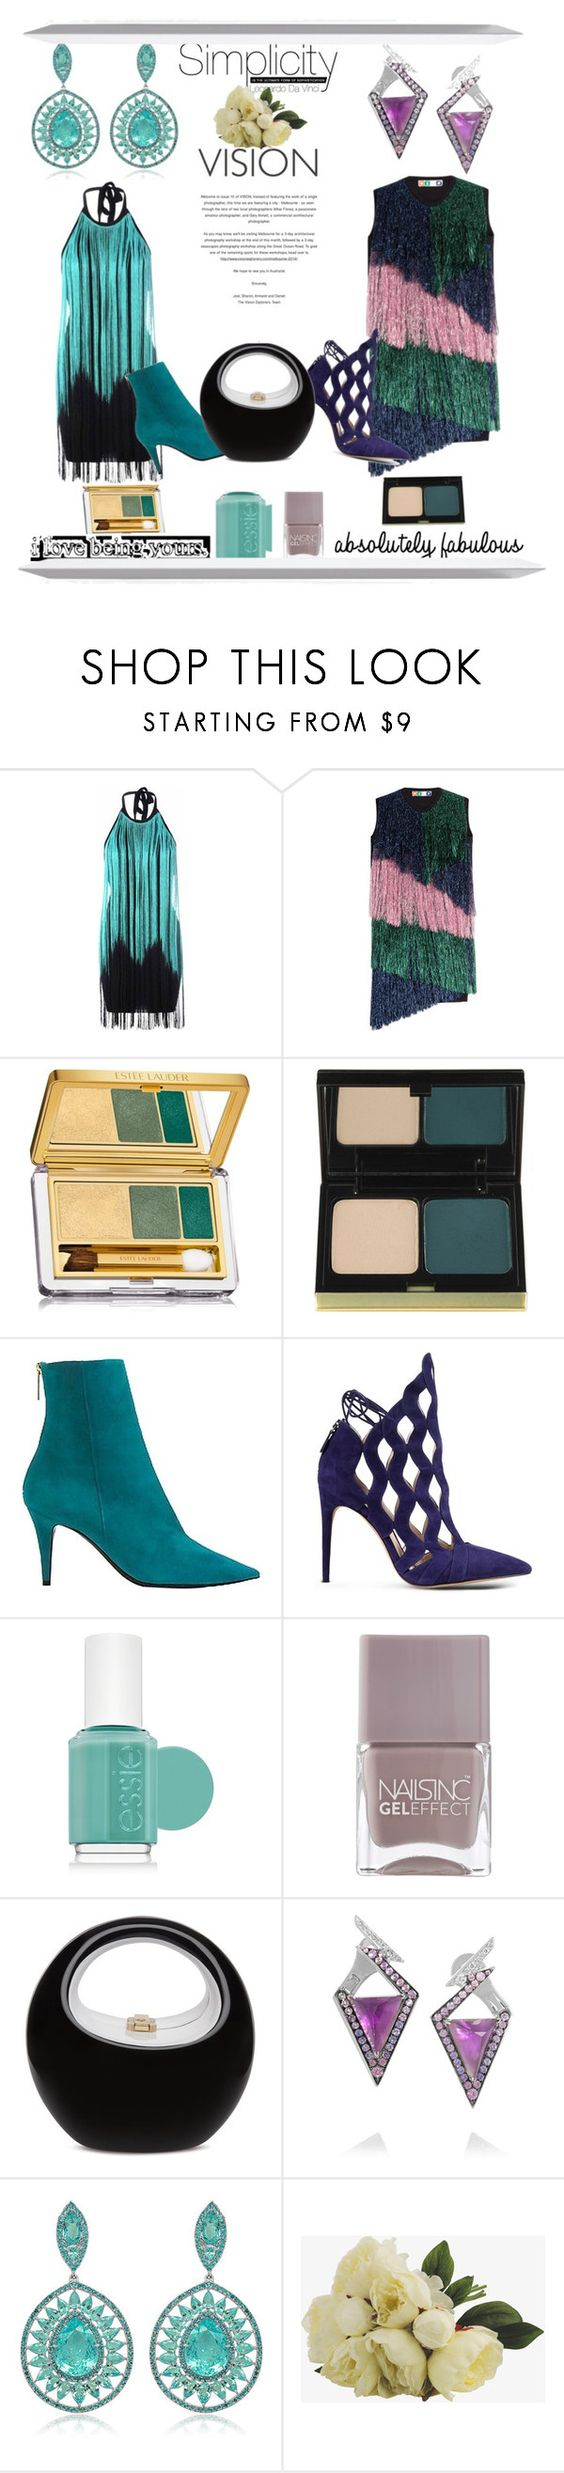 """""""Swing Out Sister"""" by pampire ❤ liked on Polyvore featuring Glamorous, MSGM, Estée Lauder, Kevyn Aucoin, Tamara Mellon, Alexandre Birman, Essie, Nails Inc., Stephen Webster and Sutra"""